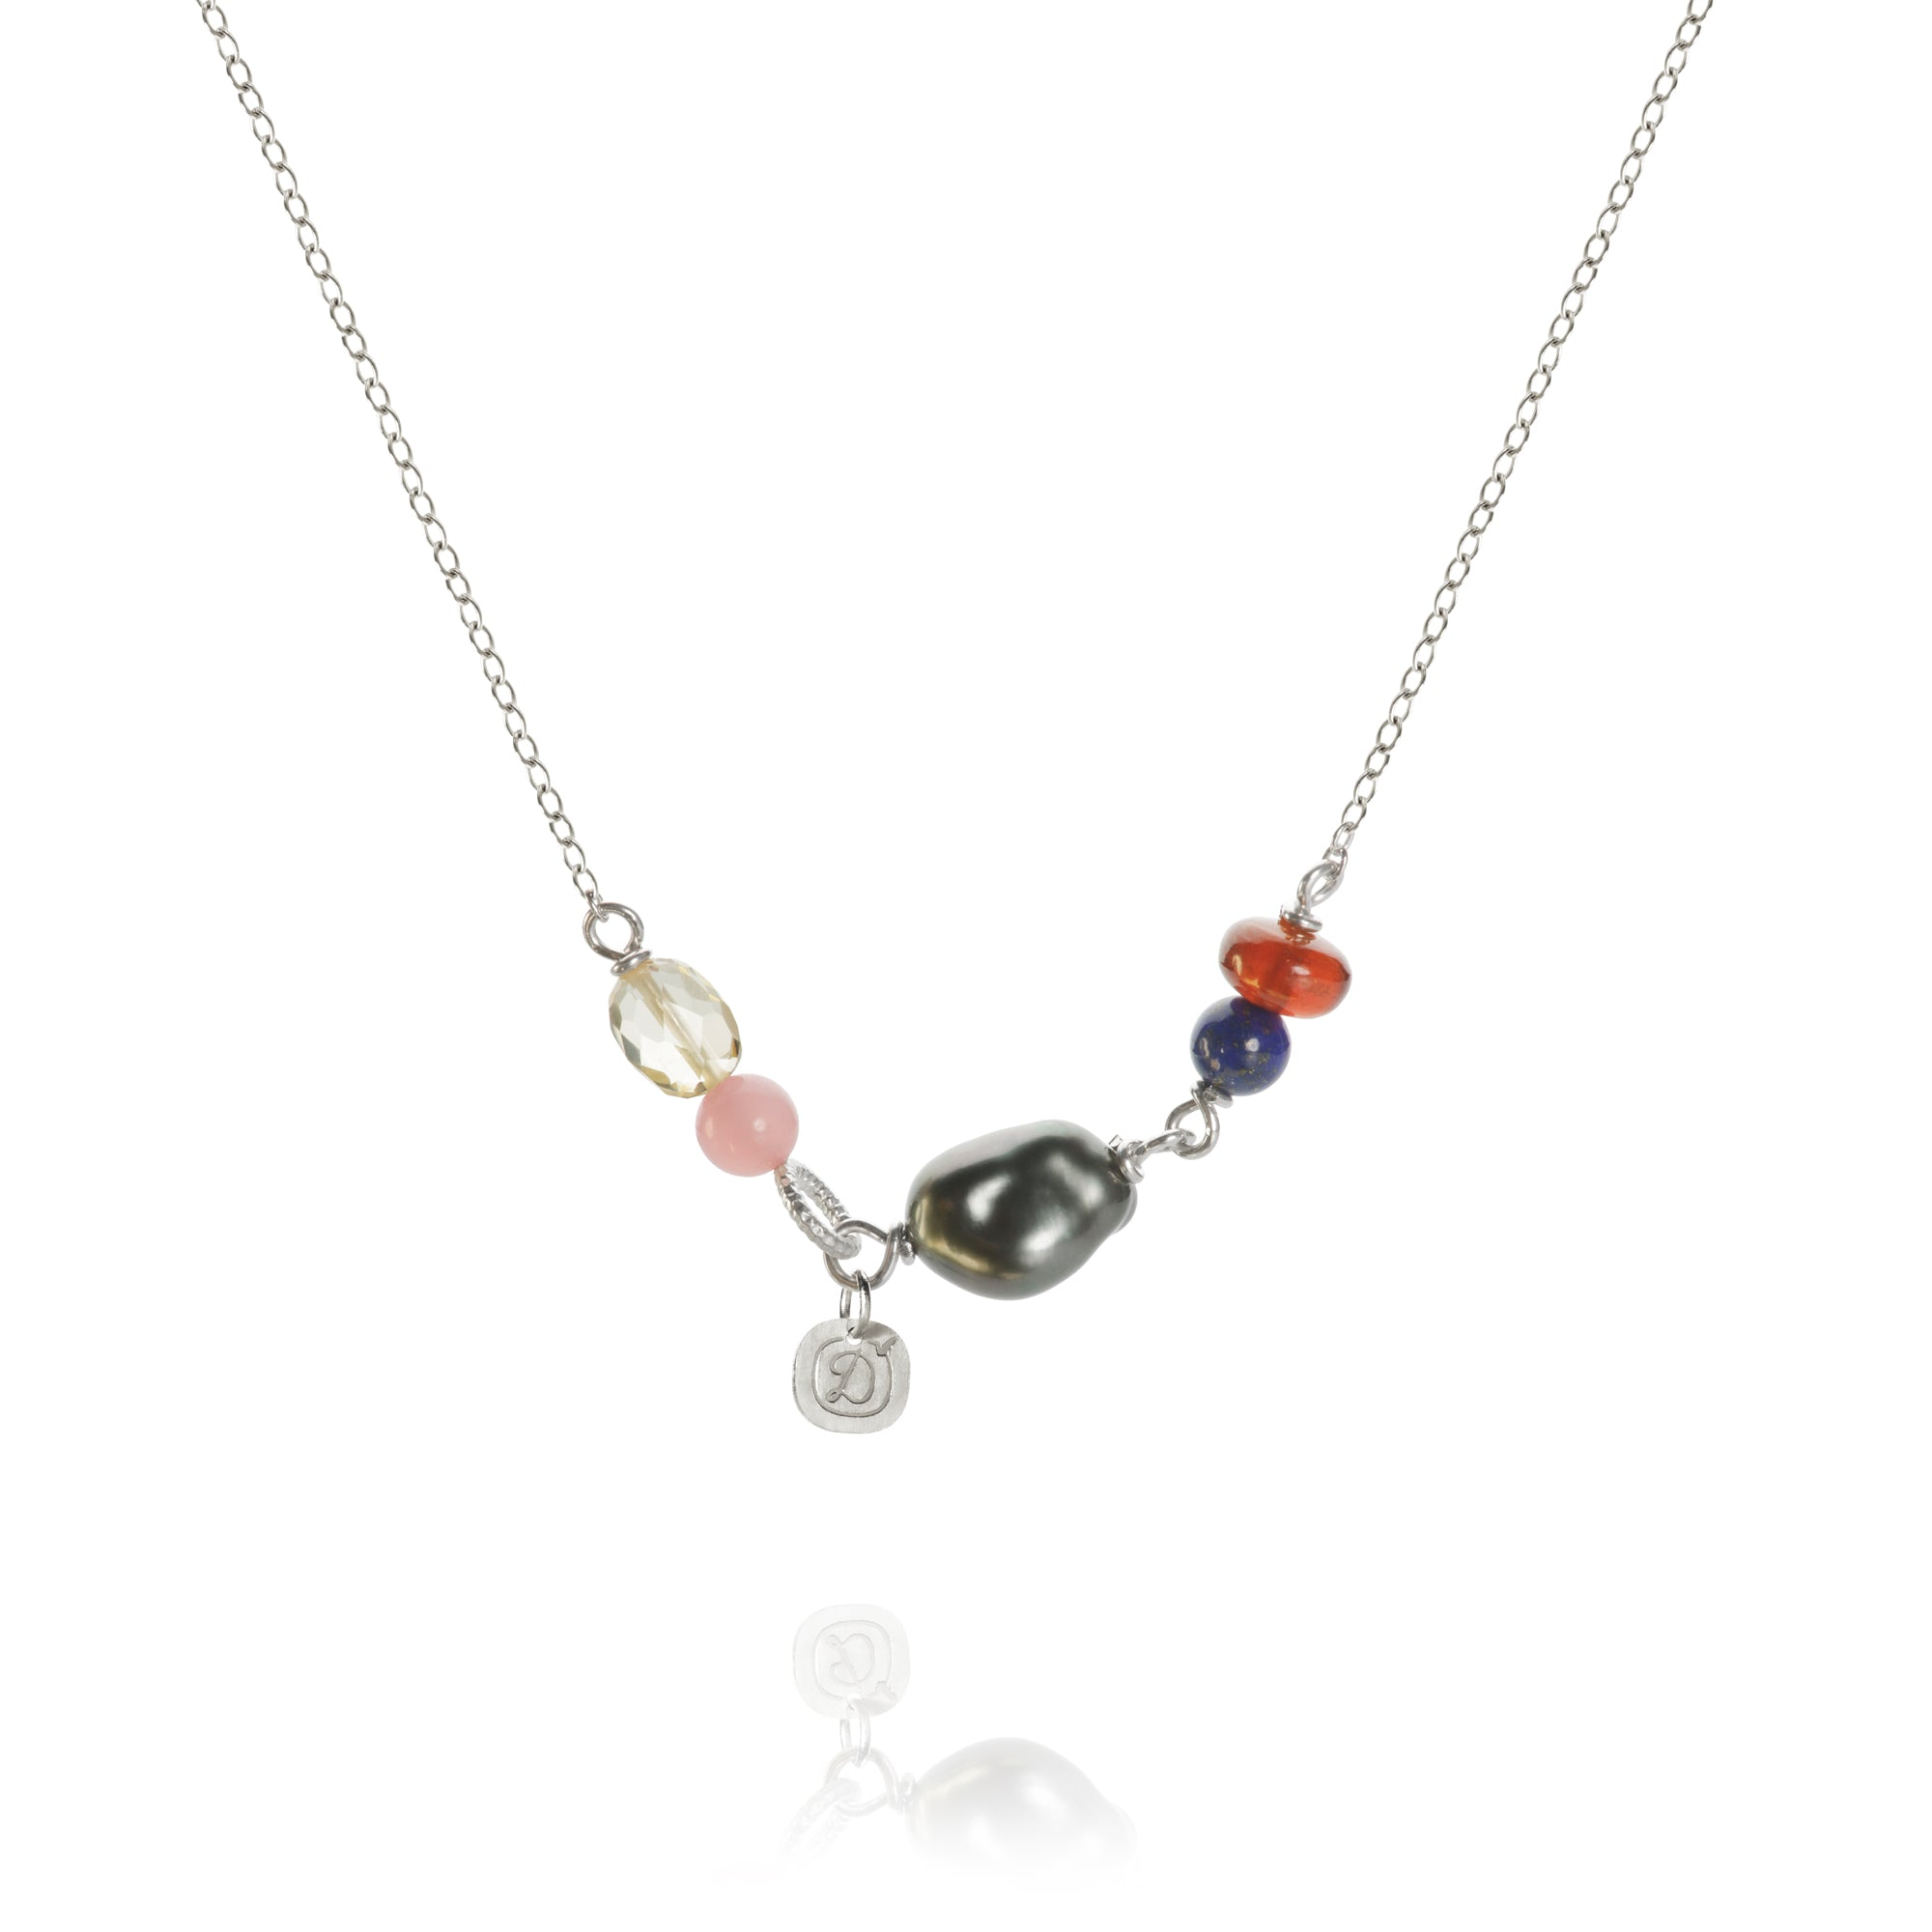 Piccolo Twillight necklace with Tahitian pearls, guava quartz, lapis lazuli, citrine and hessonite garnet. 45 cm.